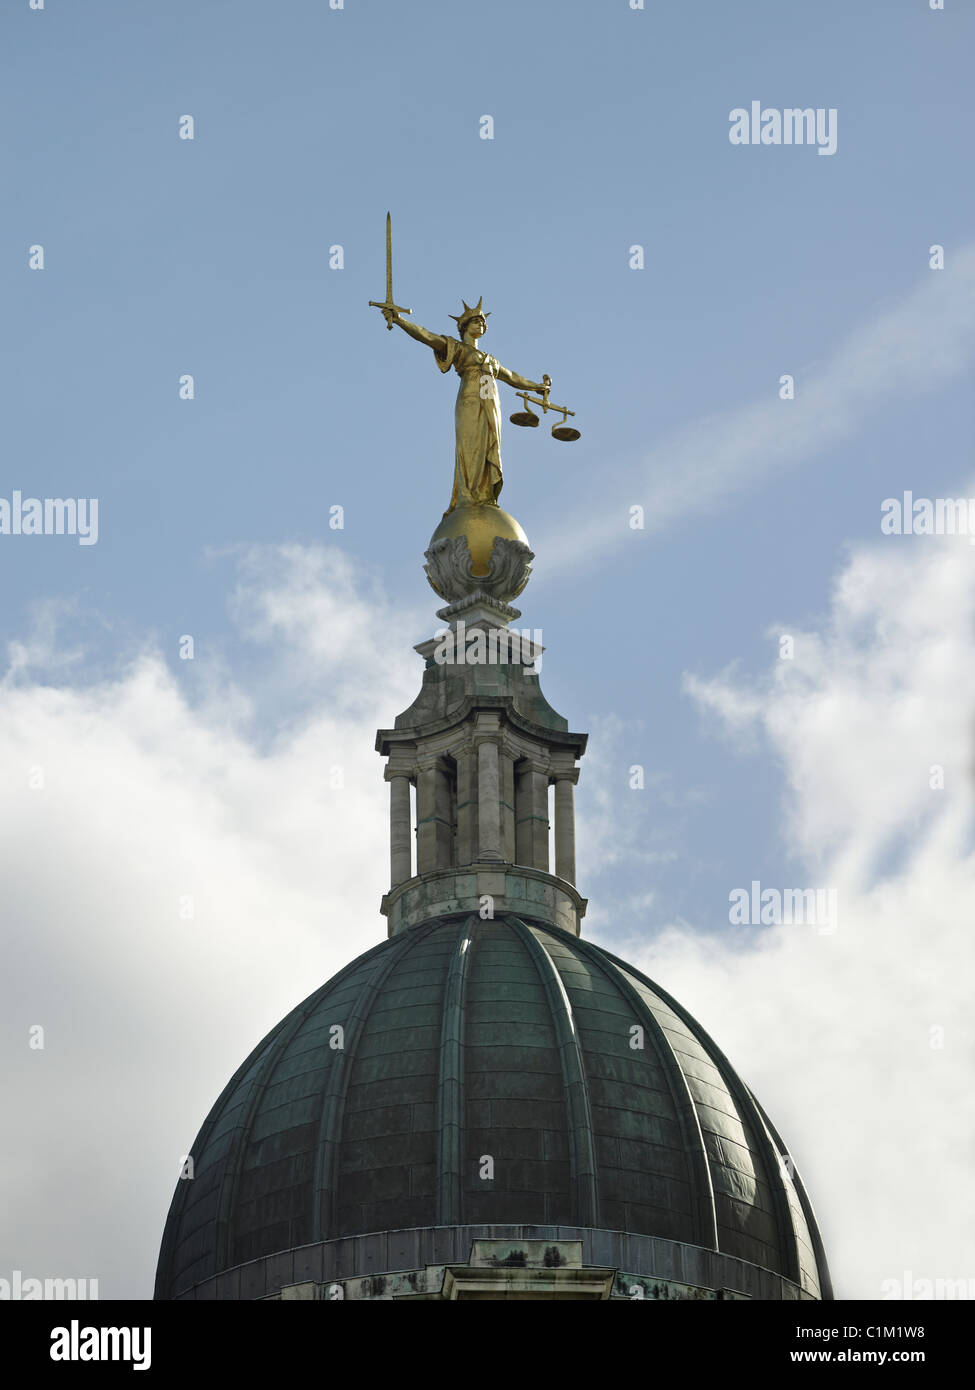 Figure of Lady Justice holding a sword for punishment and balance scales for justice, on the Old Bailey, The Central - Stock Image